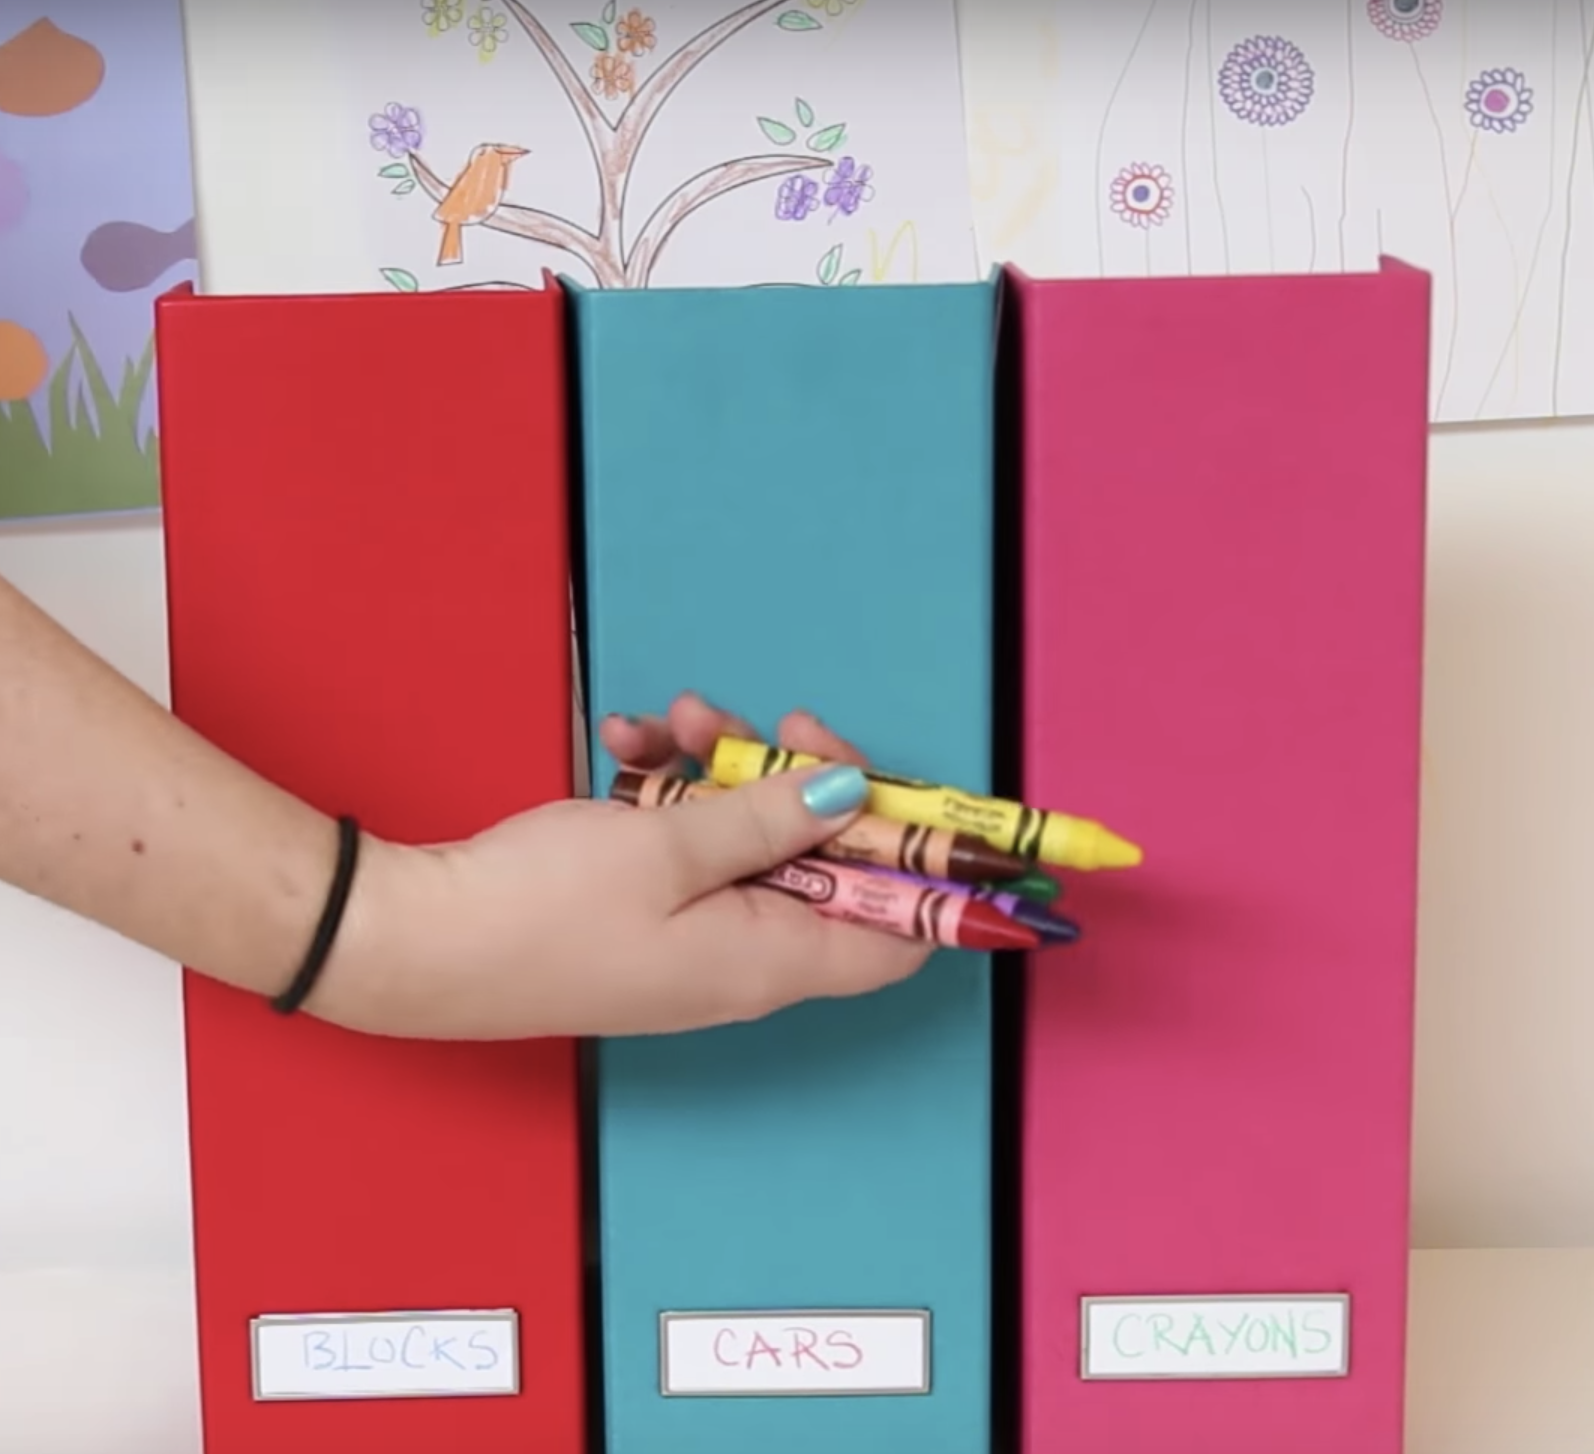 19 Ways To Get Your Home In Order If You Have Kids